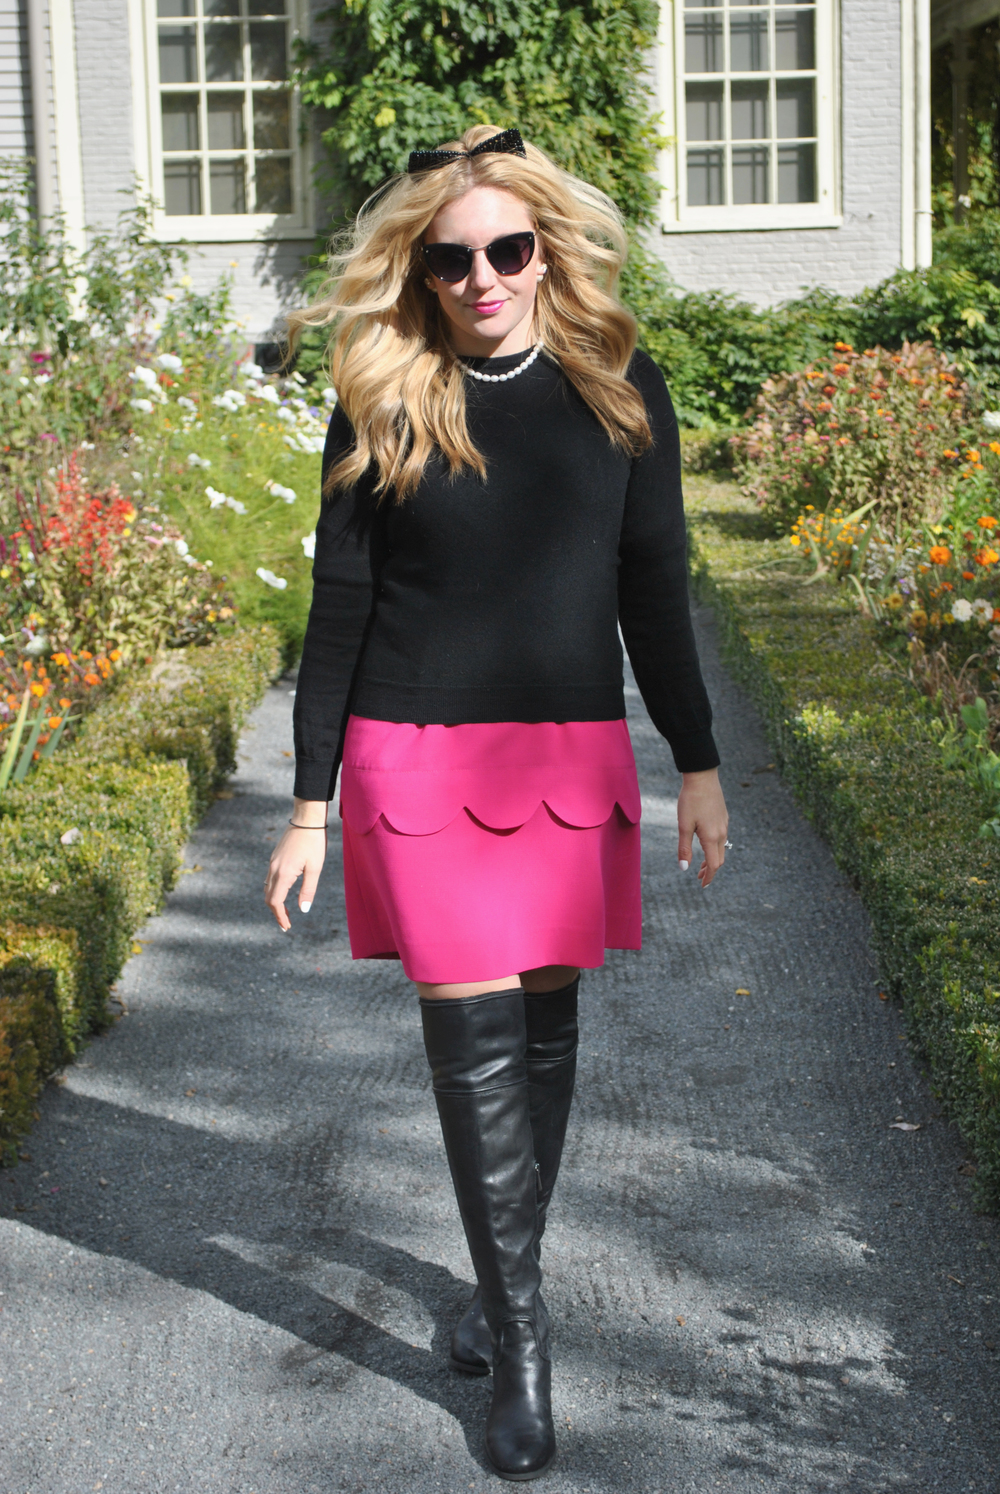 thoughtfulwish | ootd // pink dress // dress and sweater // adopt a cat // cat ears // cat sunglasses // fashion // boston fashion blogger // boston fashion // new england fashion